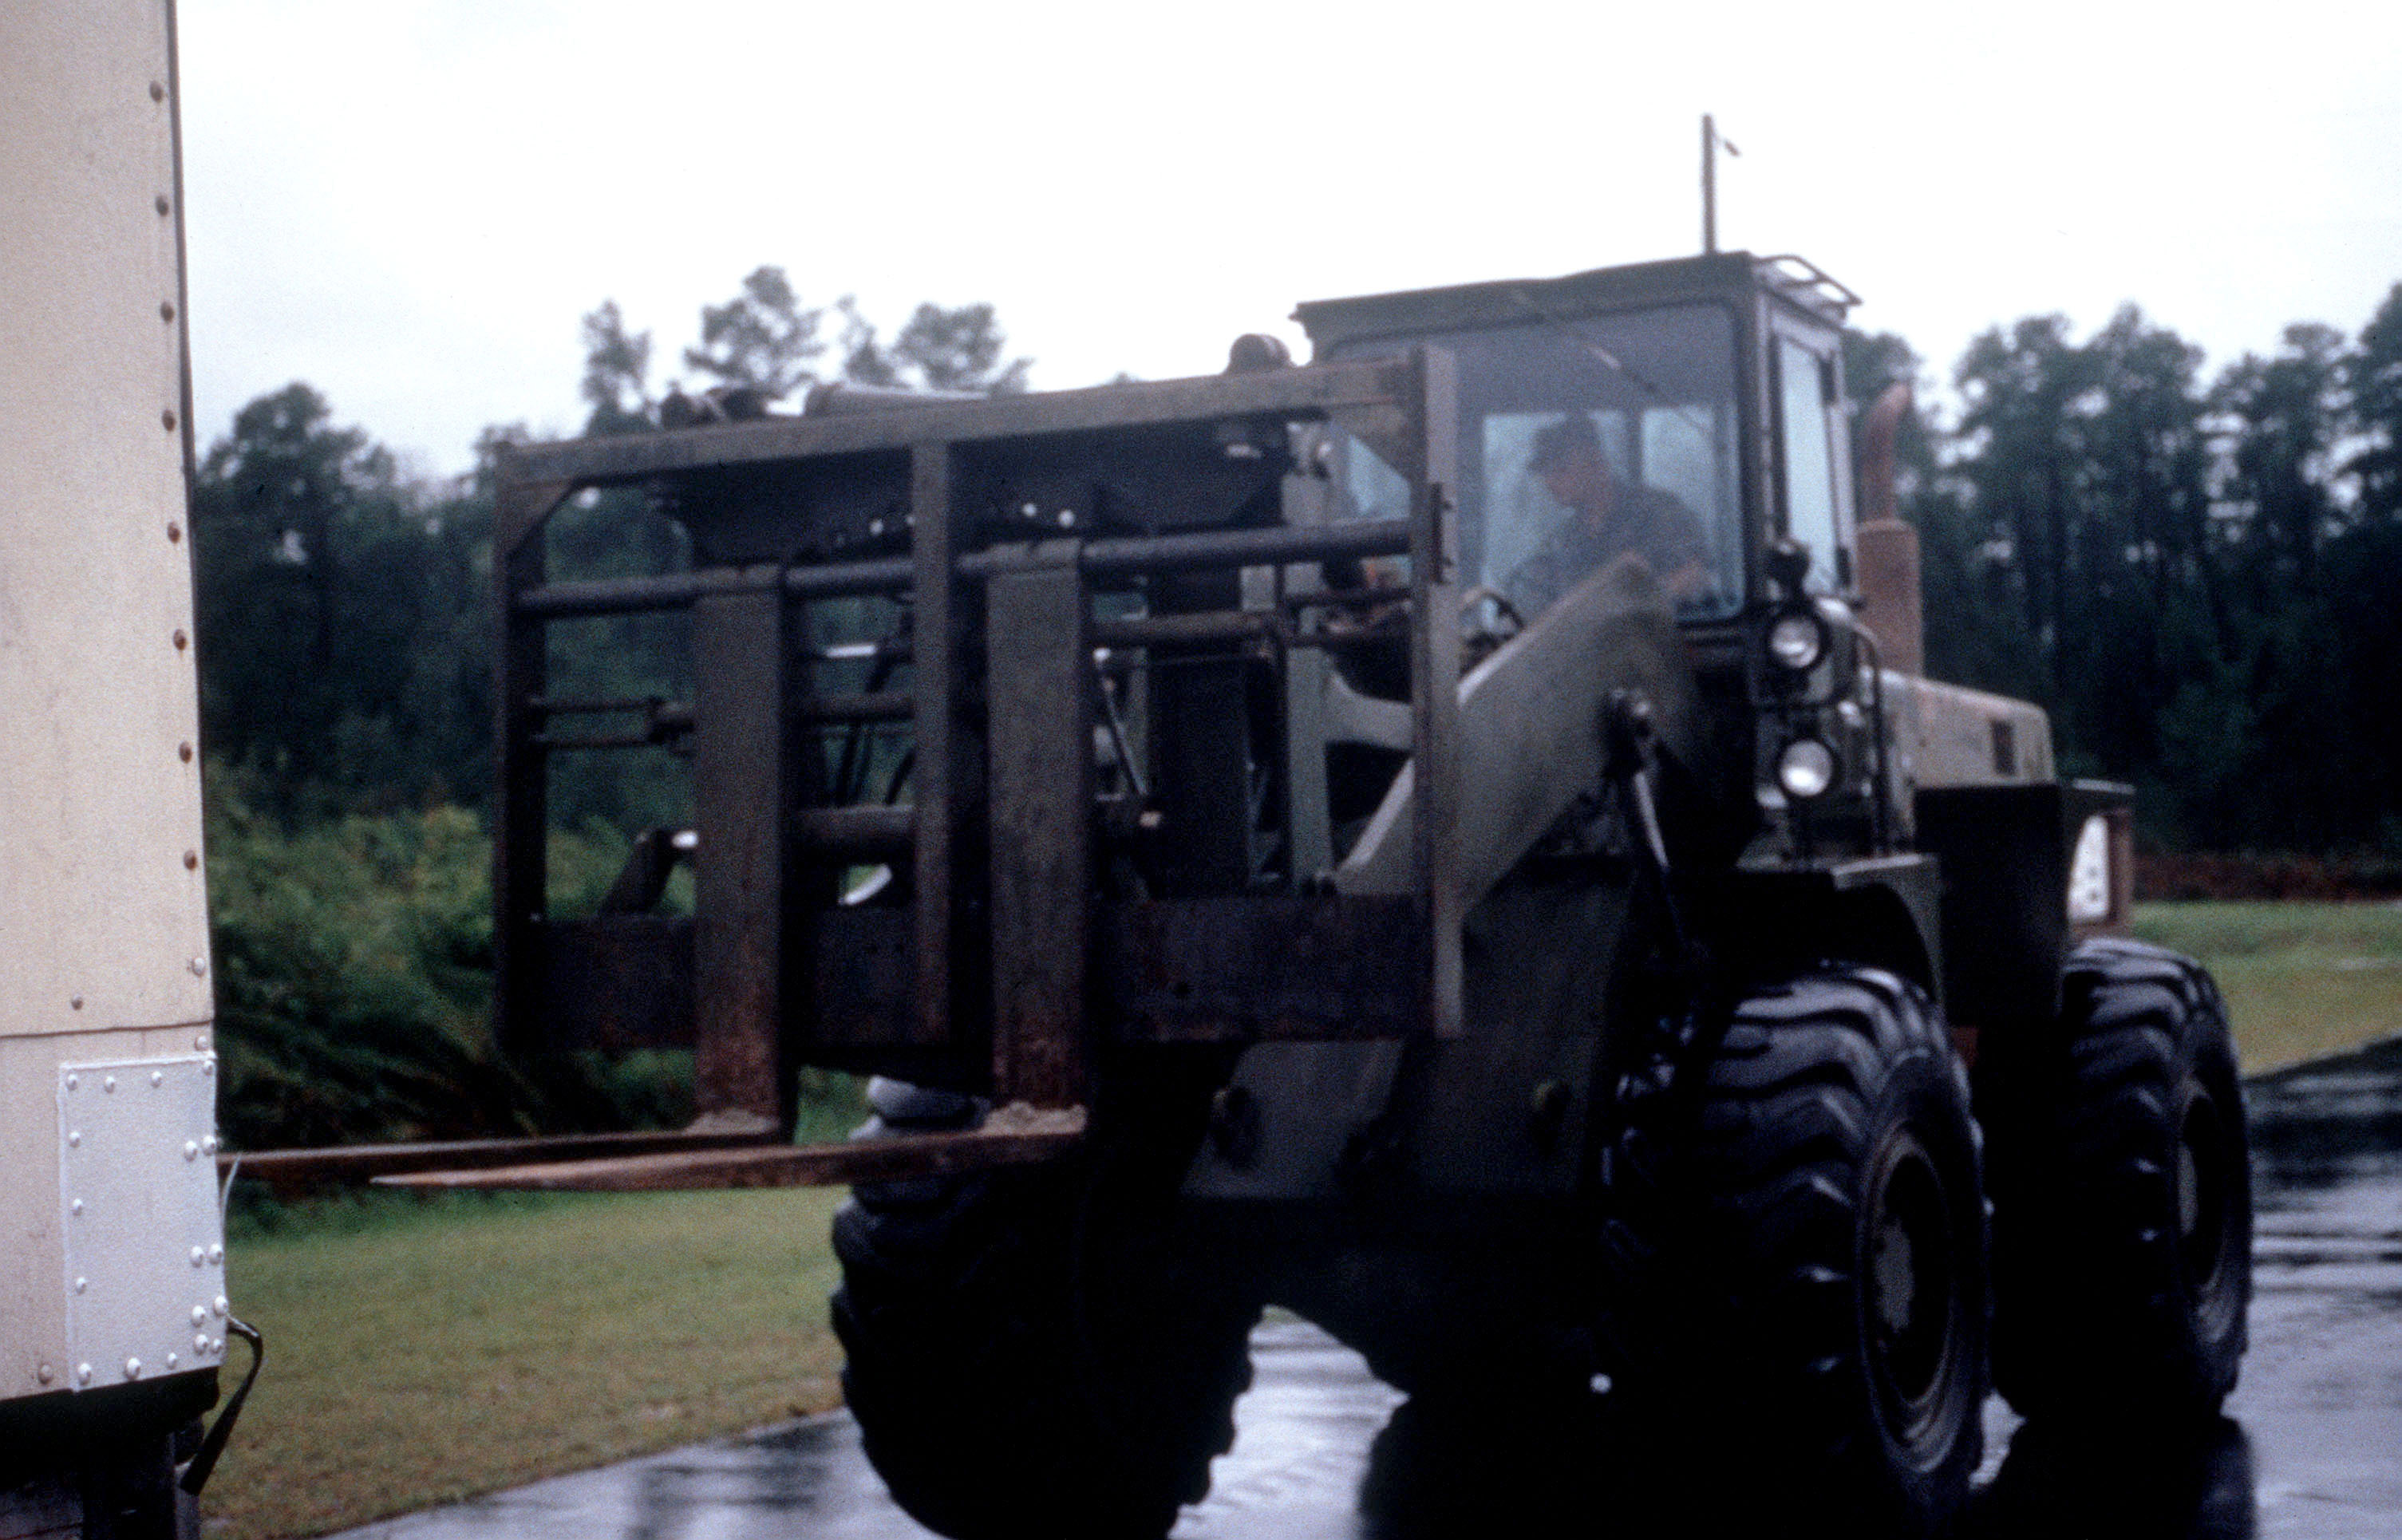 An Army National Guard soldier from Kinston Armory, Kinston, North Carolina drives a heavy forklift truck towards a commercial trailer to off-load pallets of bottled water after Hurricane Bonnie